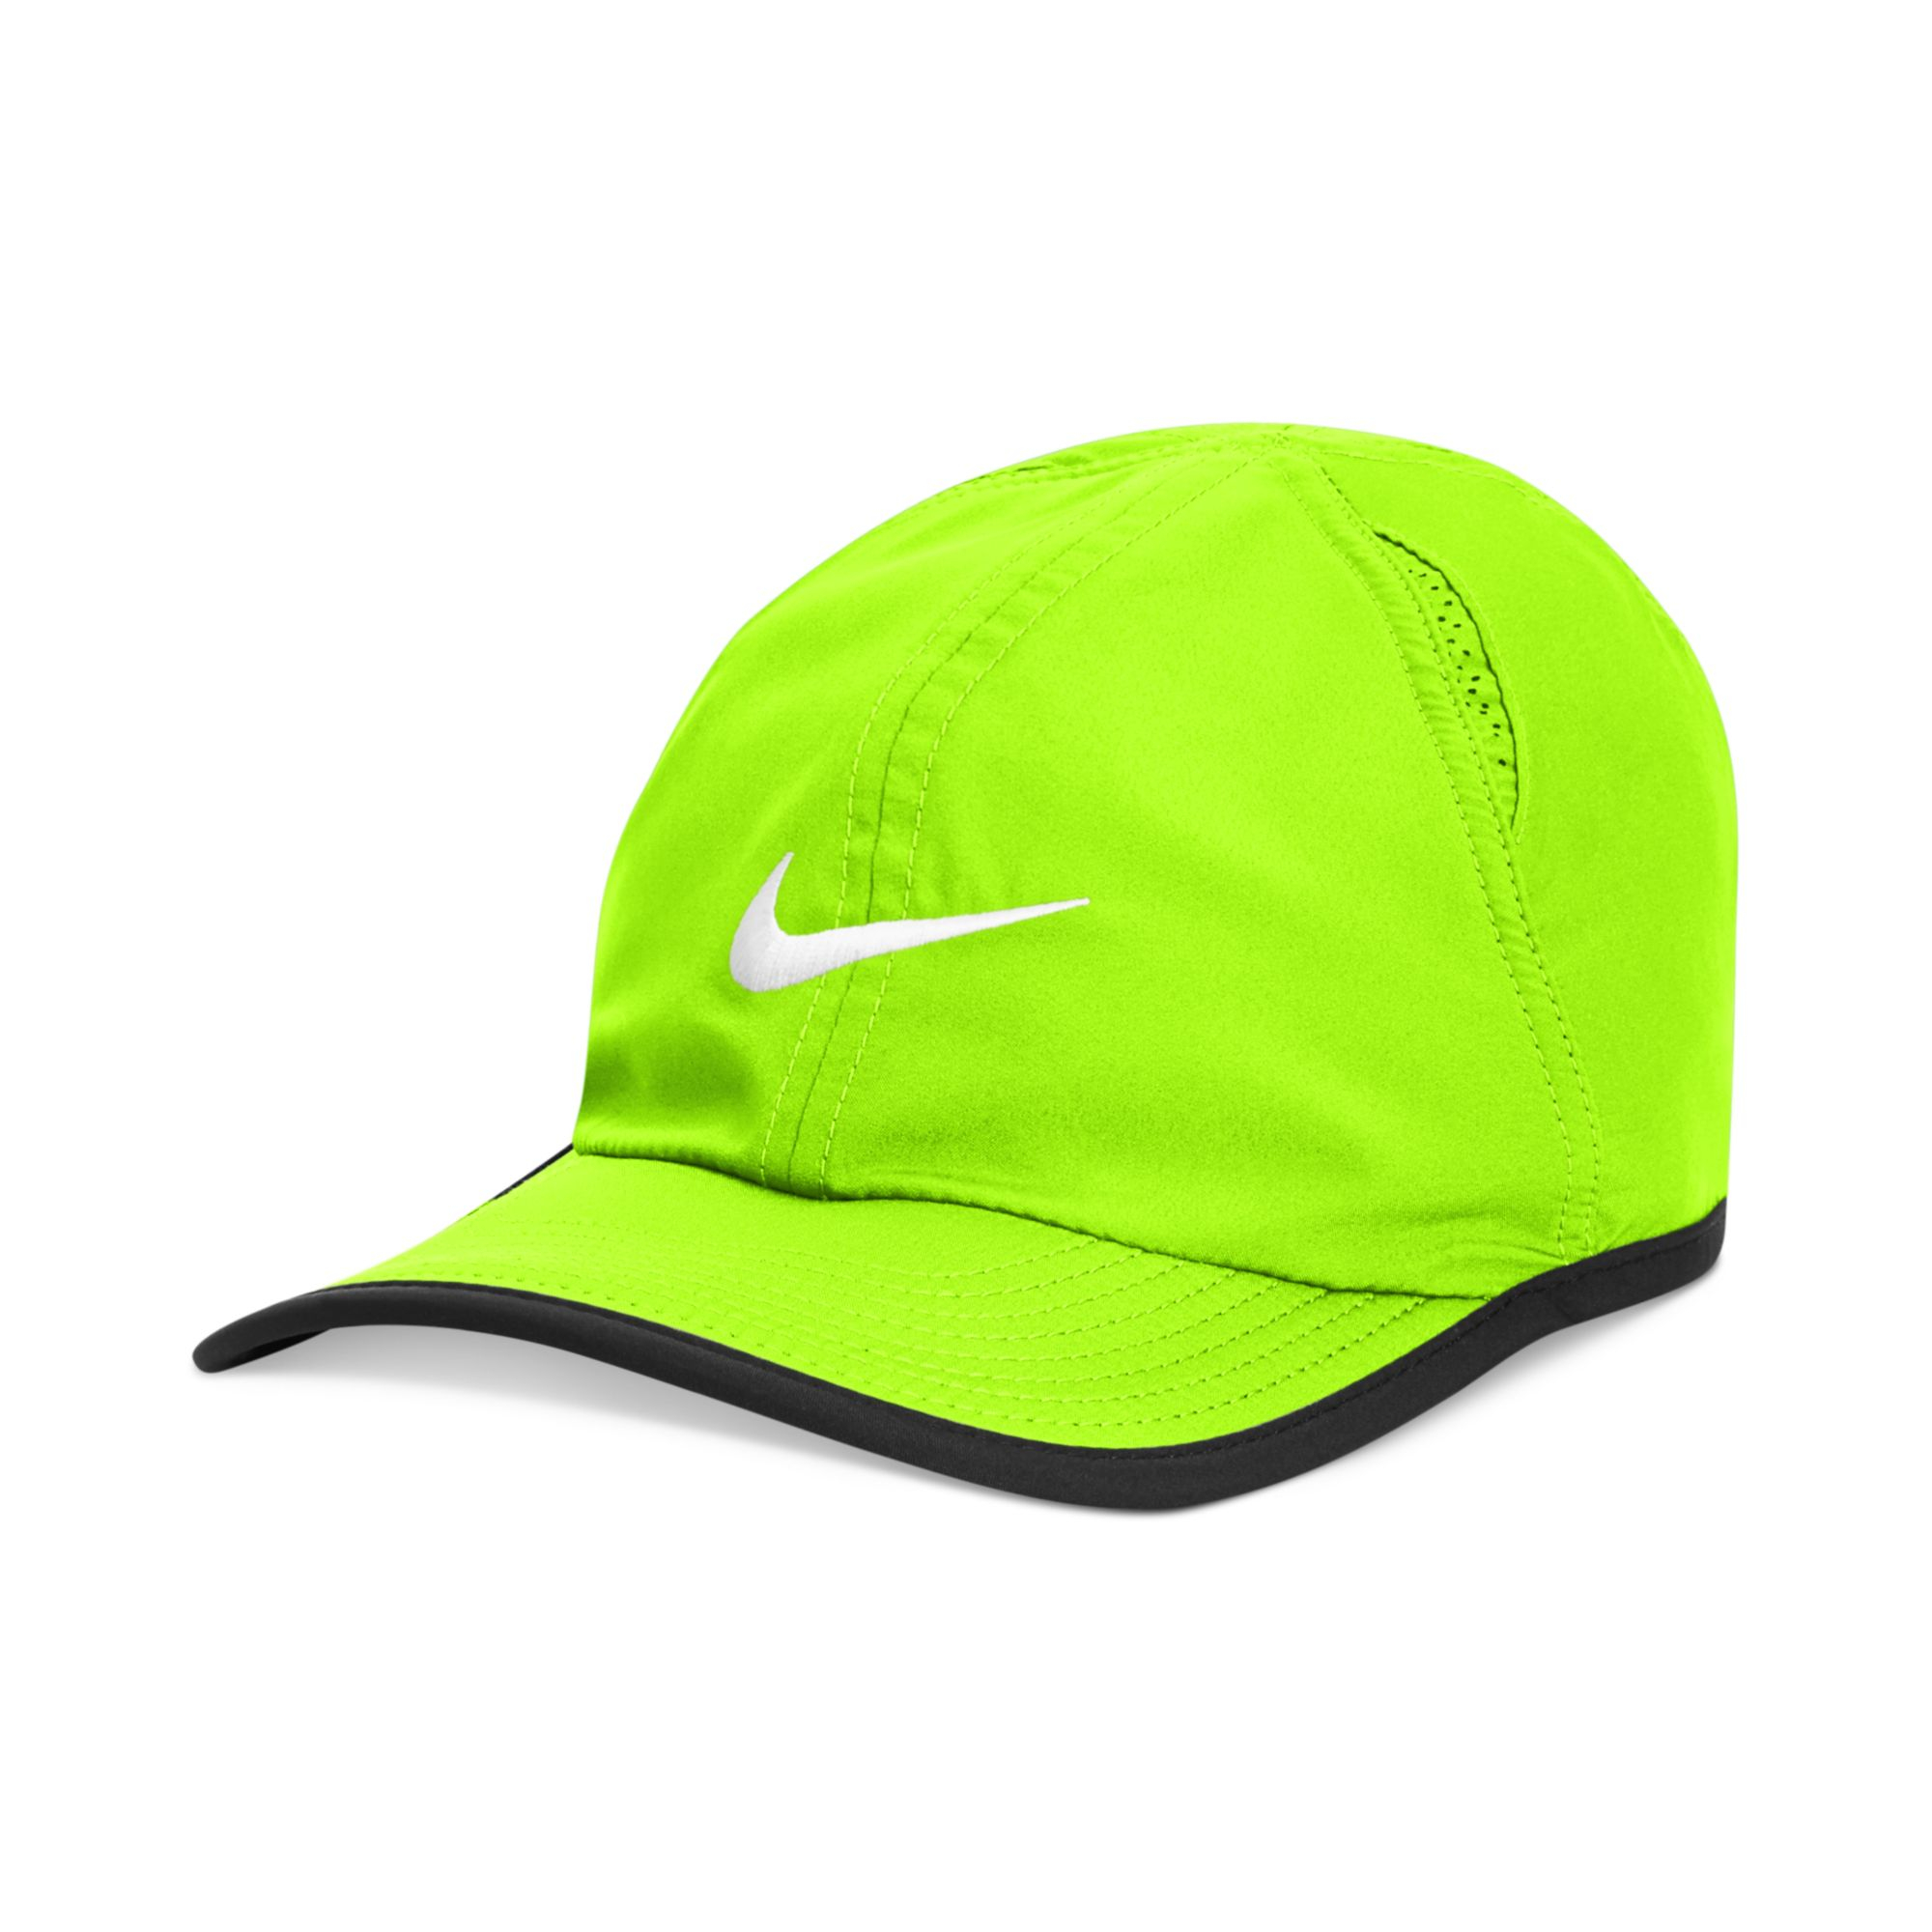 b6e0cdc0f5692 ... free shipping lyst nike drifit featherlight performance hat 20 in green  for men fba27 fca15